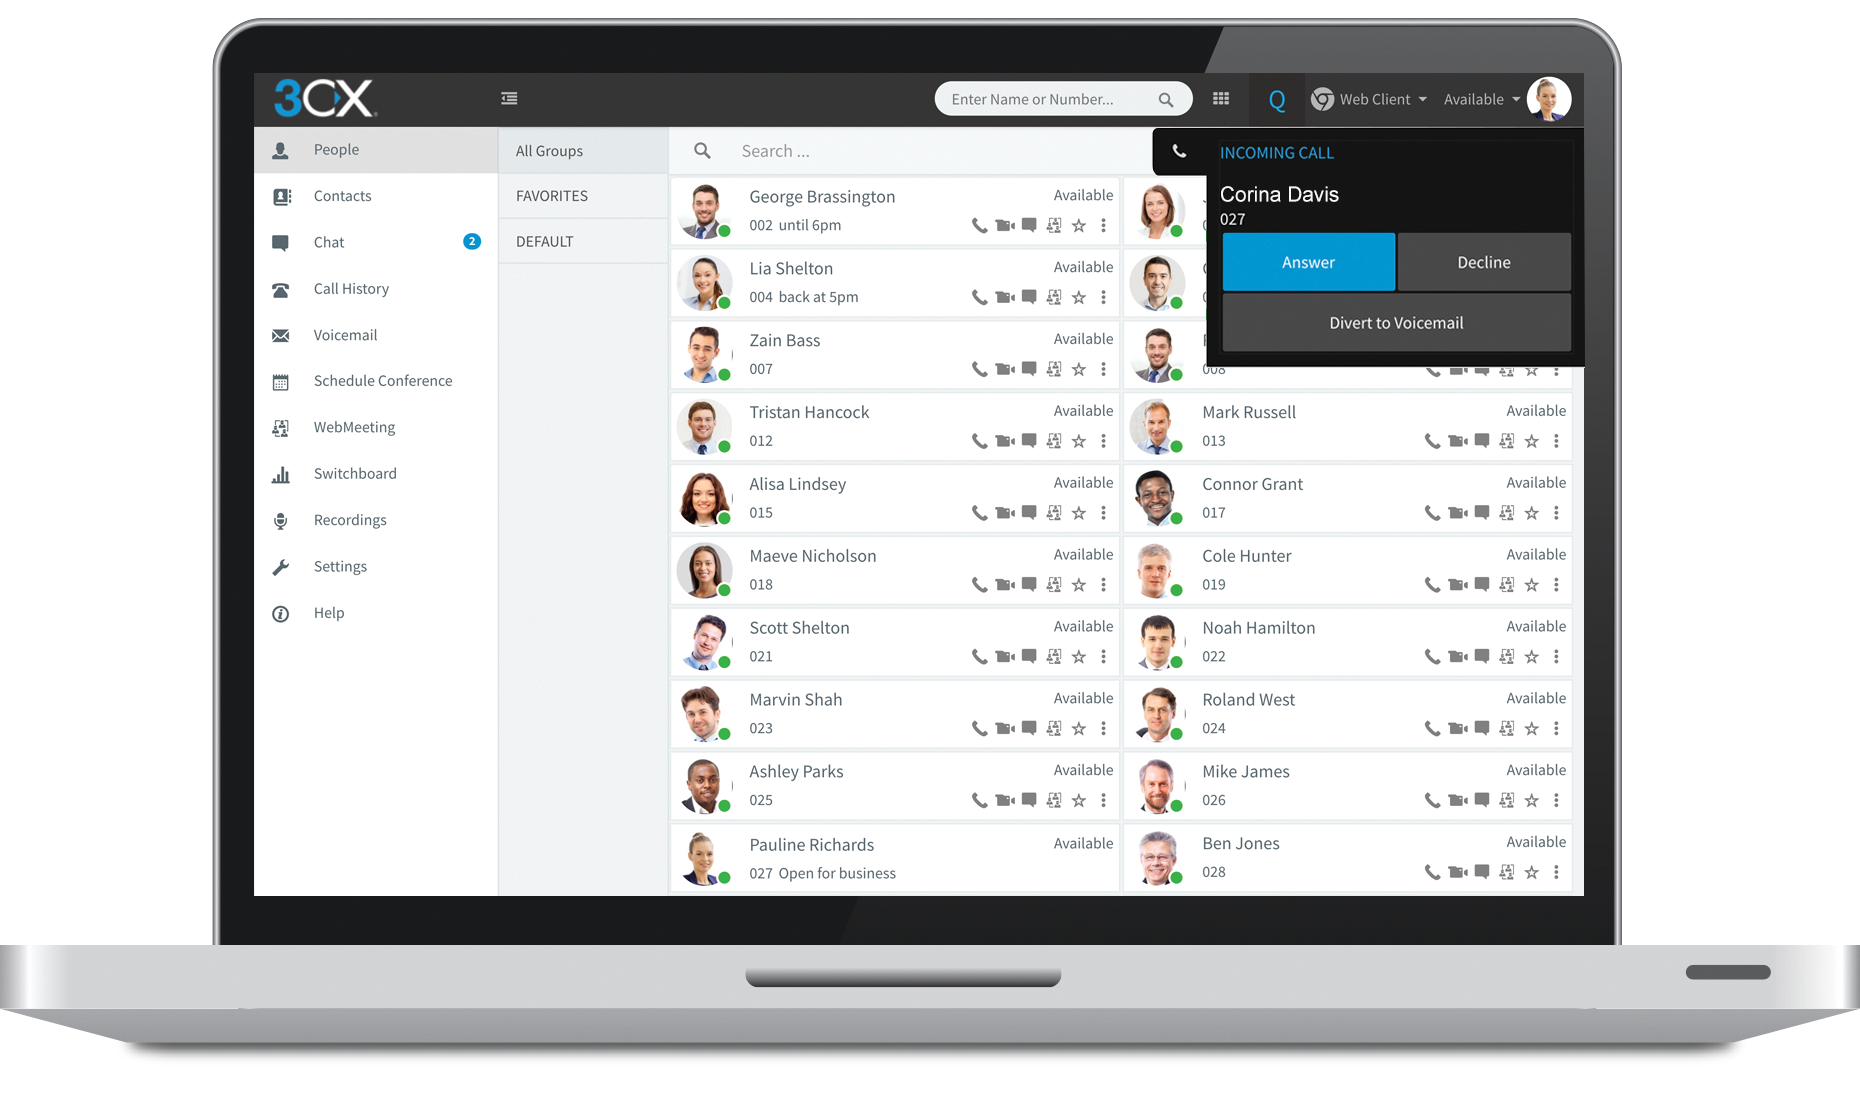 3CX screenshot: See all your team in one unified management console. Avoid unnecessary call transfers or voice mail tags, and make managing and working with remote employees easier than ever.